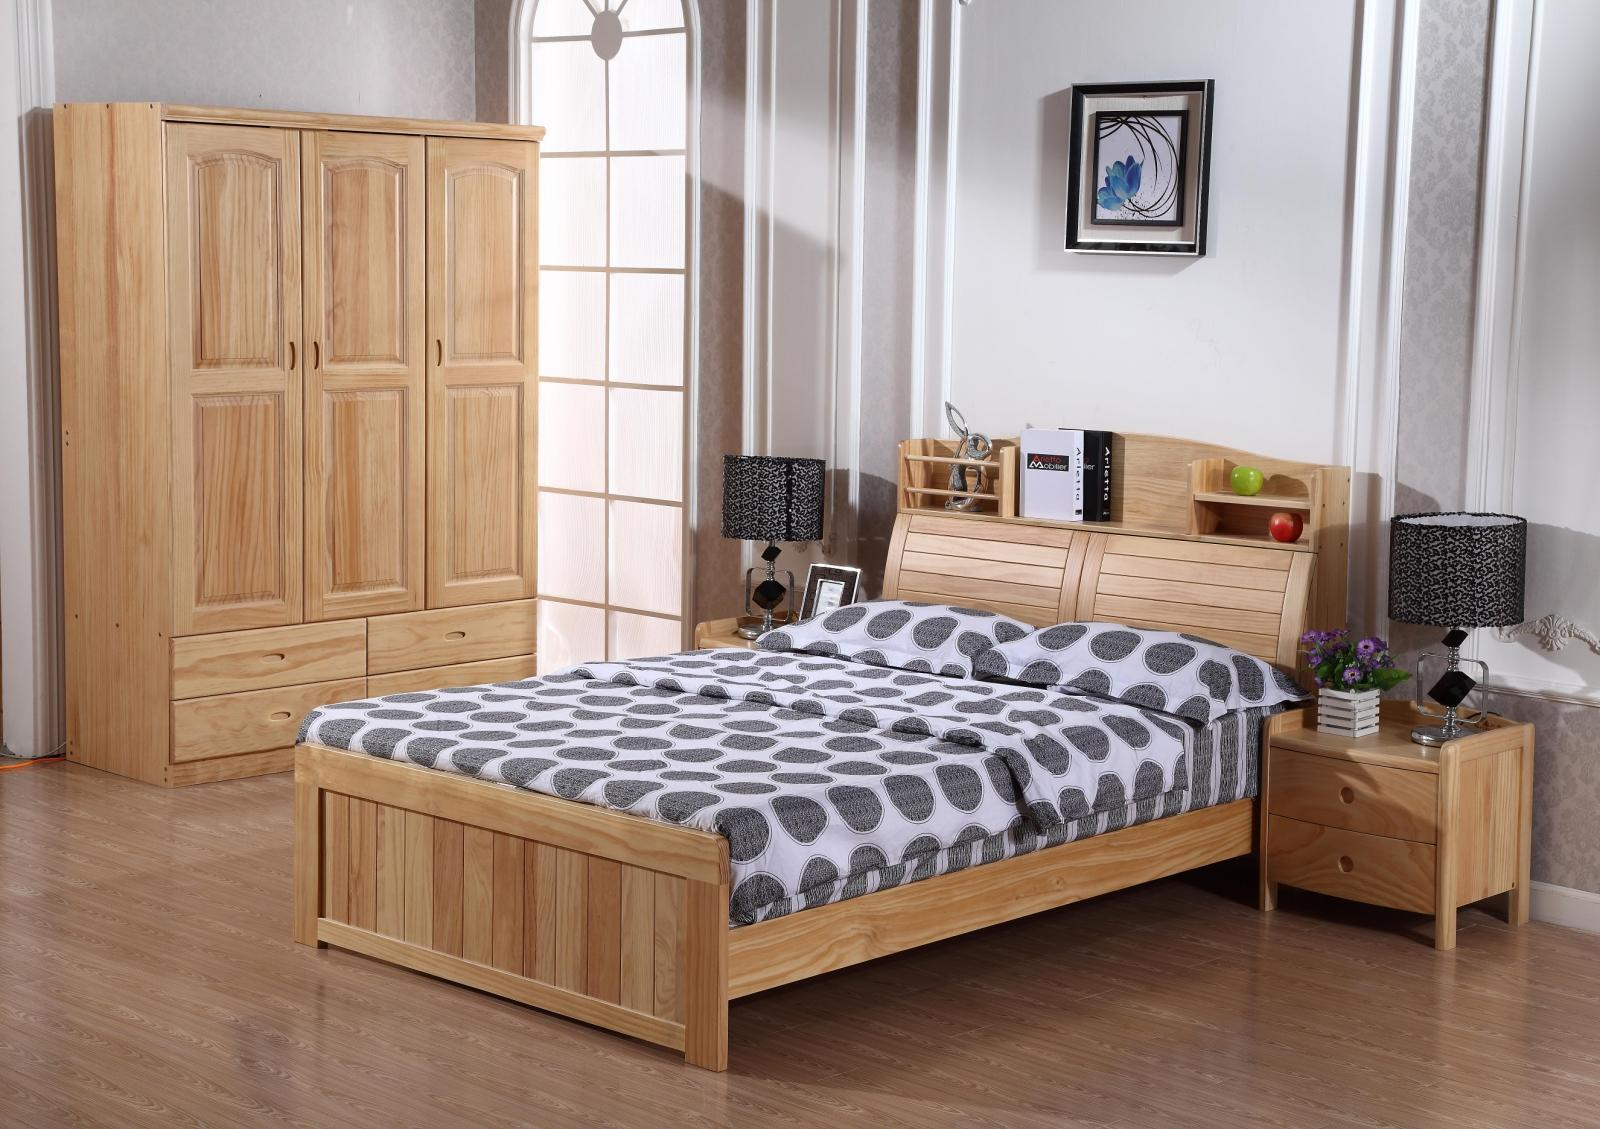 Small Crop Of Solid Wood Bedroom Furniture